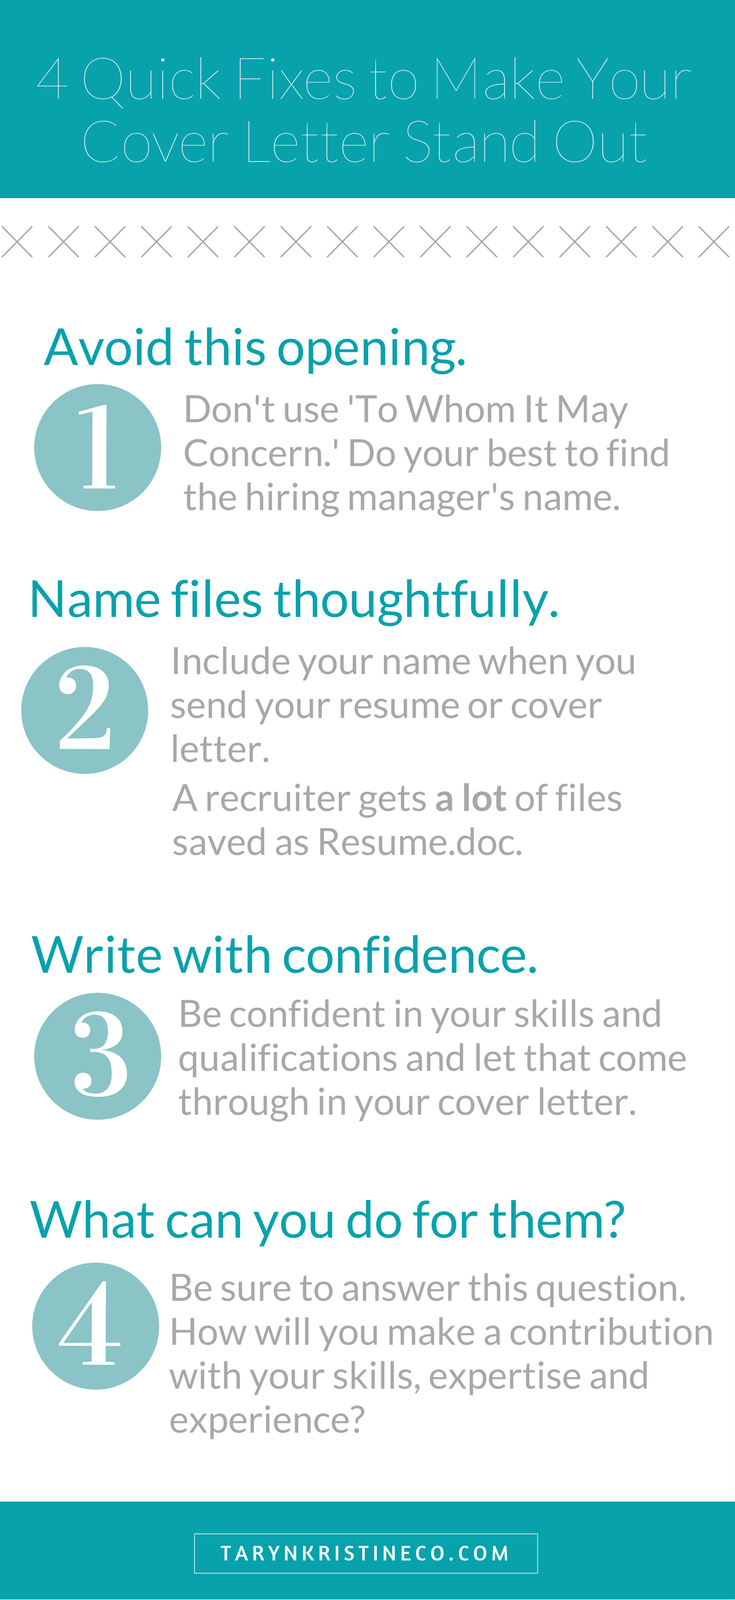 Four Quick Fixes to Make Your Cover Letter Stand Out | Top blogs ...